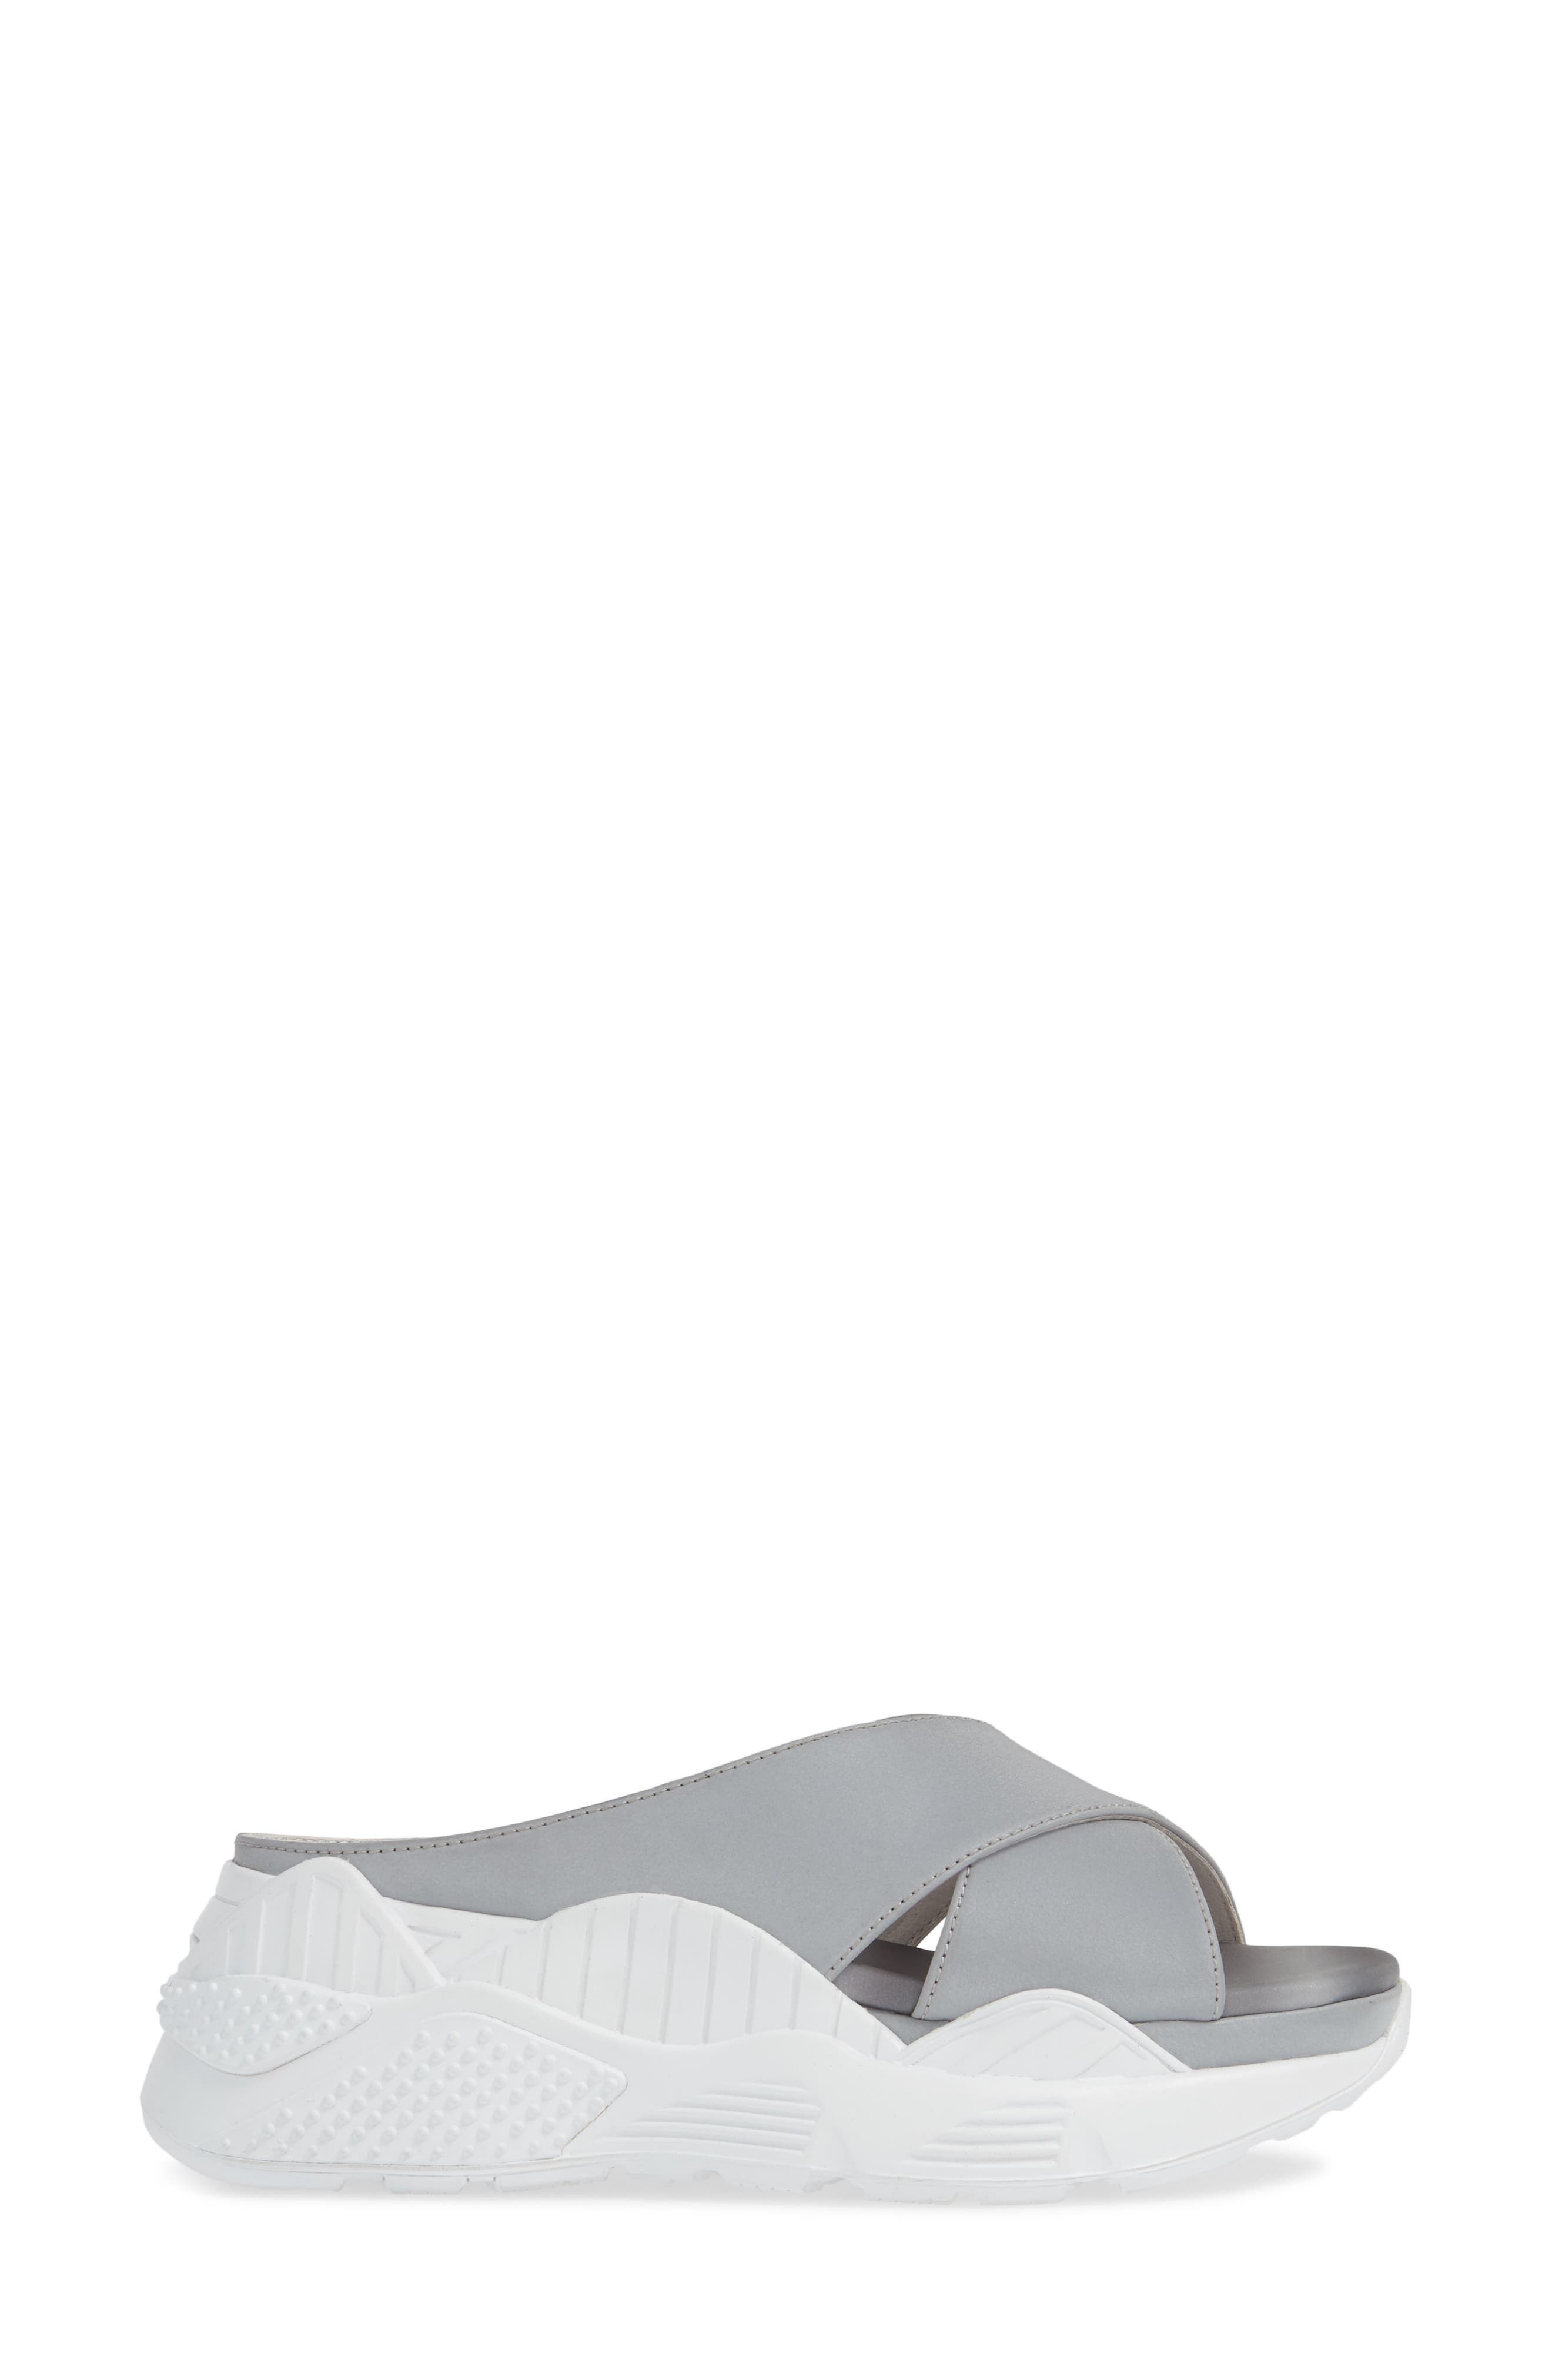 JEFFREY CAMPBELL, Sector Sport Slide Sandal, Alternate thumbnail 3, color, REFLECTIVE